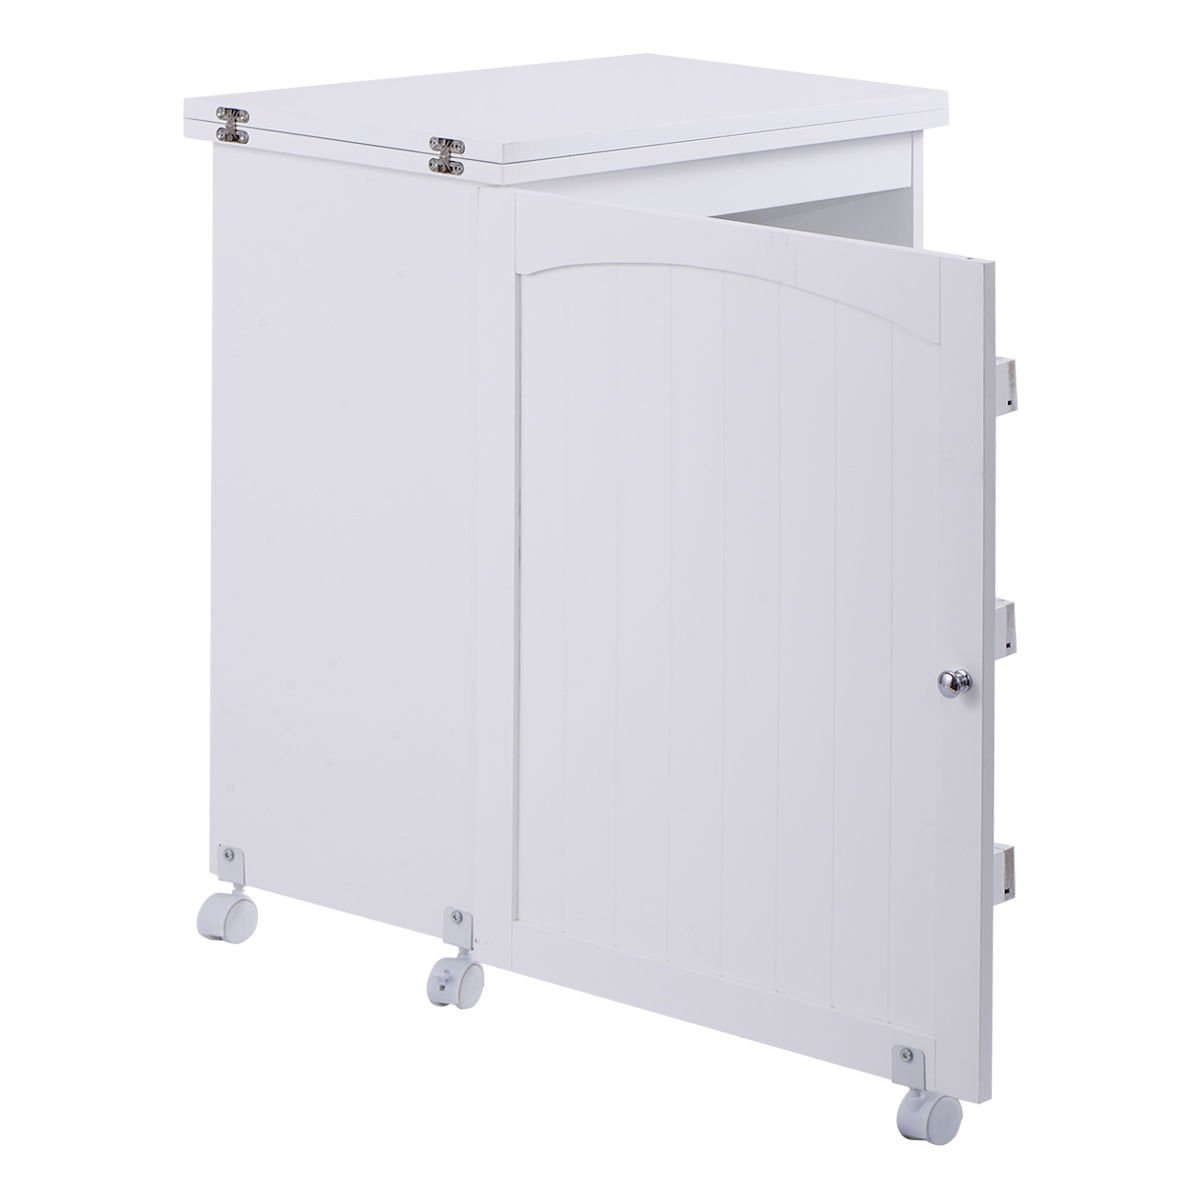 Giantex White Folding Swing Craft Table Shelves Storage Cabinet Home Furniture W/Wheels